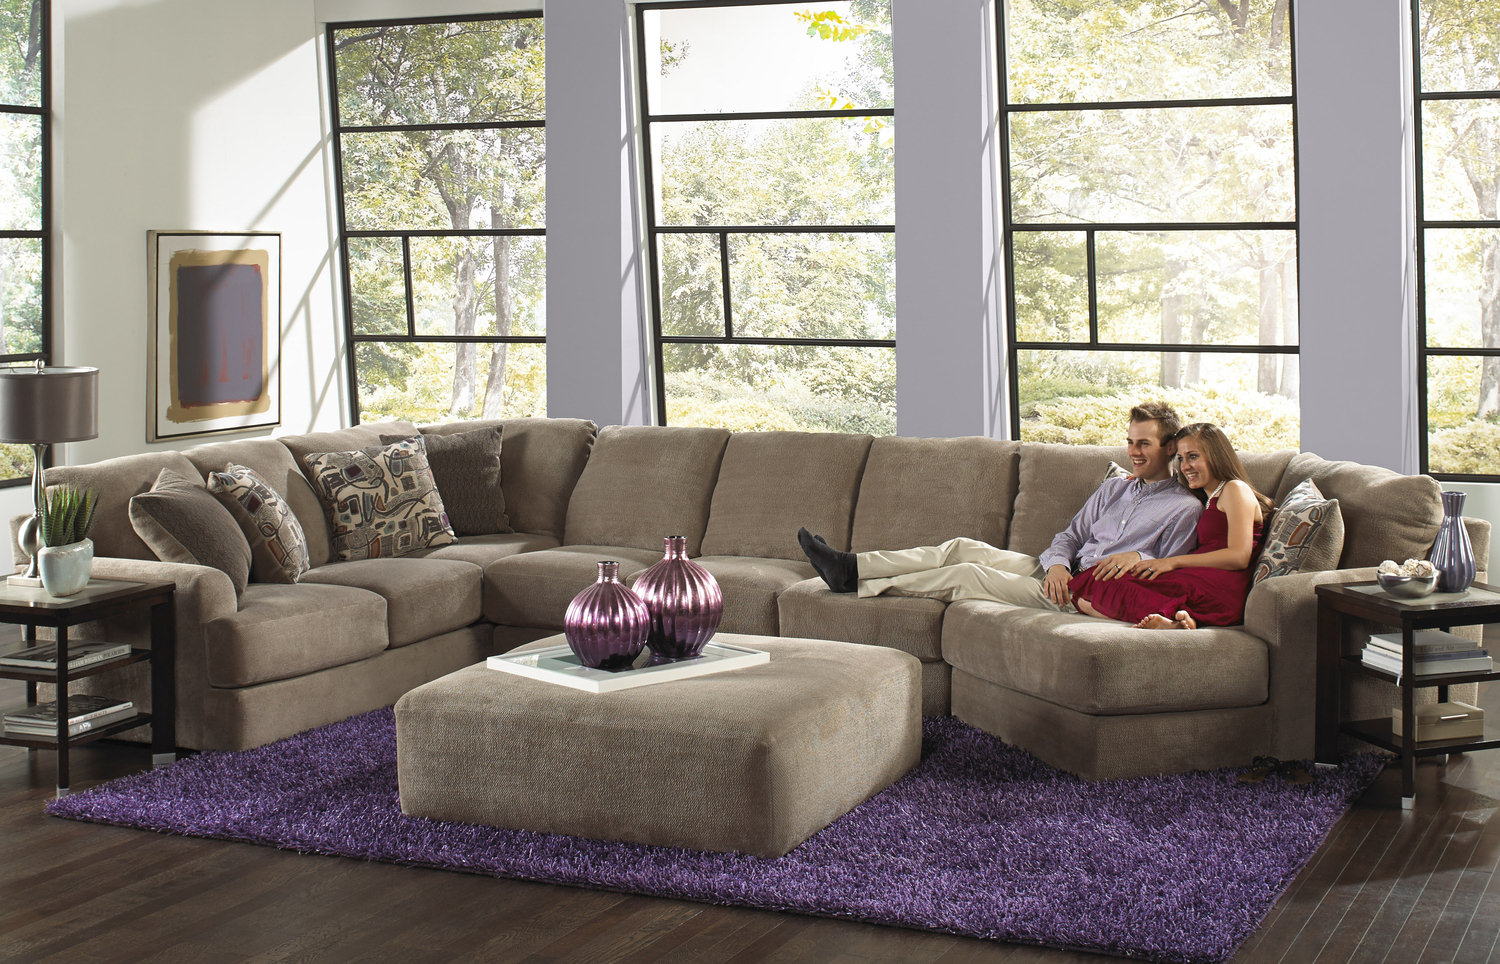 regal piece modular sectional  hom furniture  furniture stores  - regal piece modular sectional